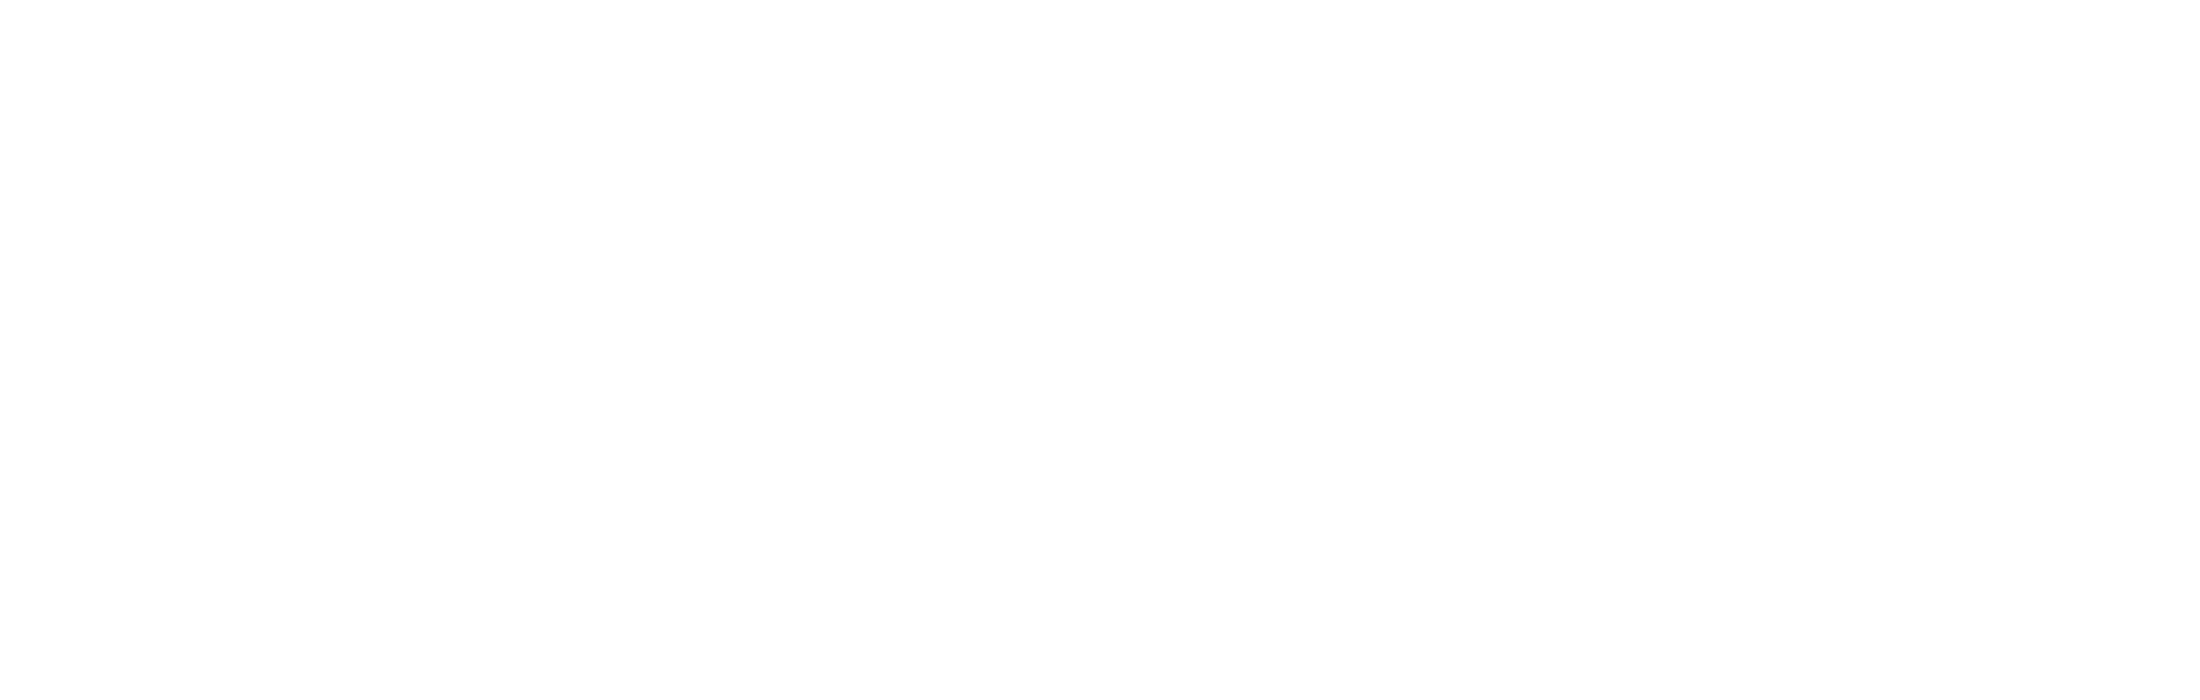 Uh Maui College >> Marketing Resources University Of Hawaii Maui College